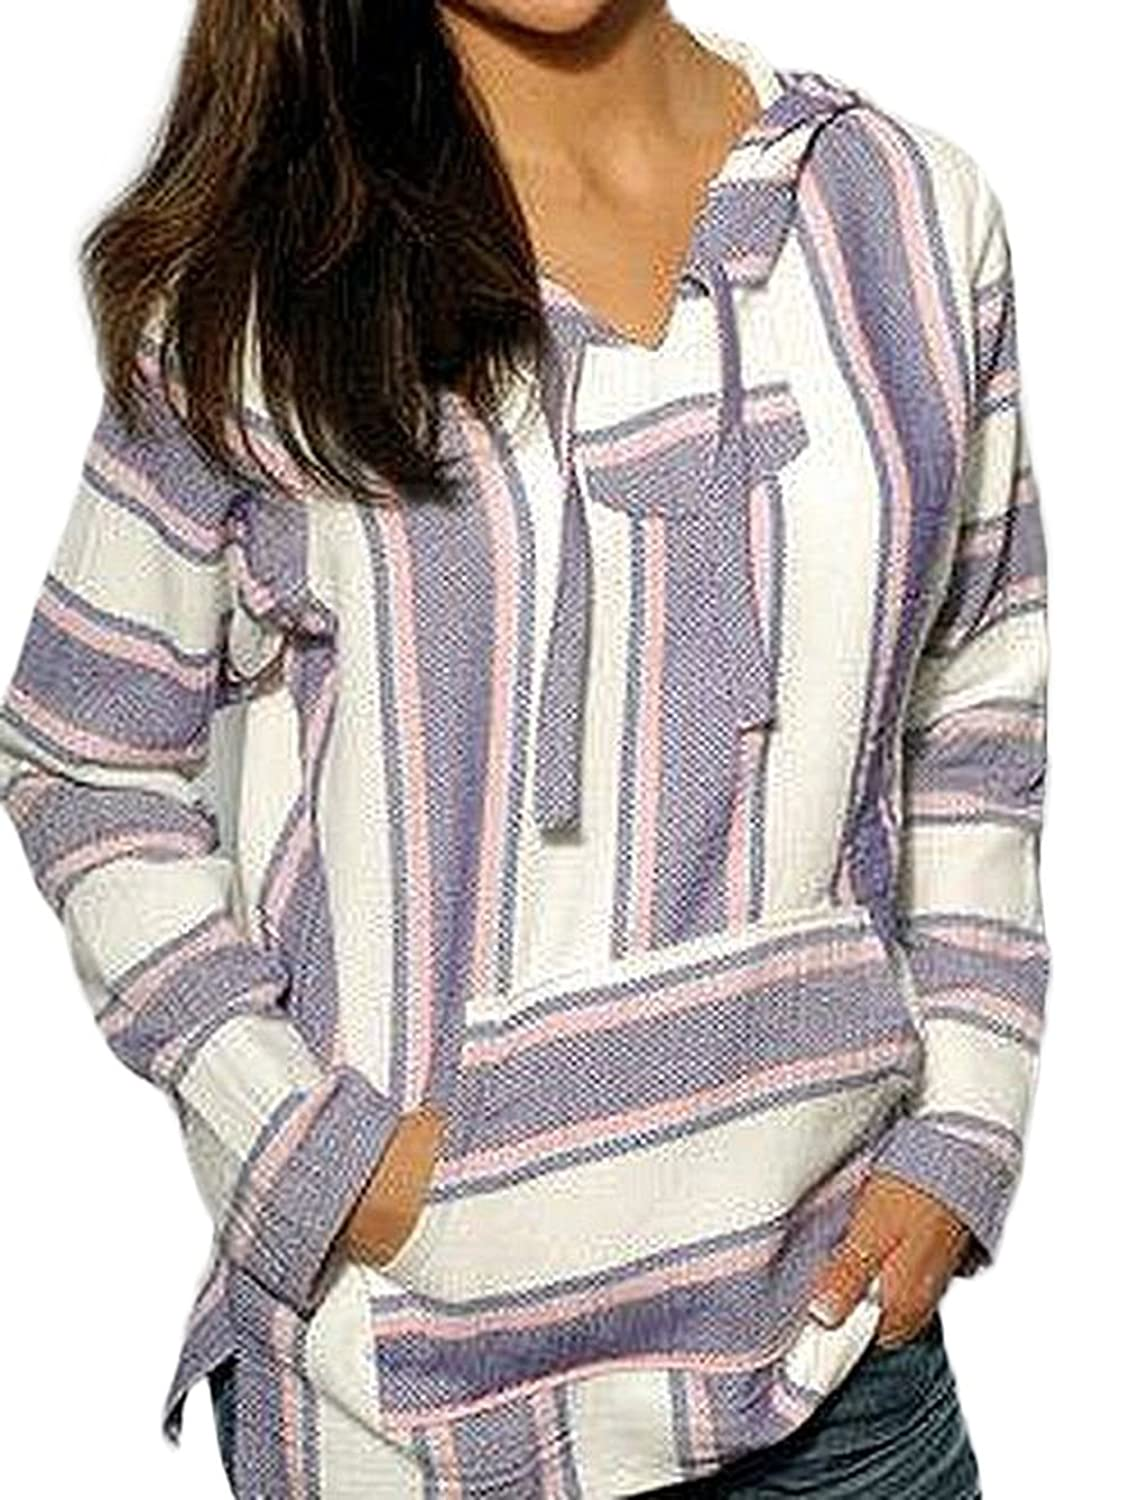 Mexican Baja Hoodie Sweater Jerga Pullover Lavender Pink White at ...